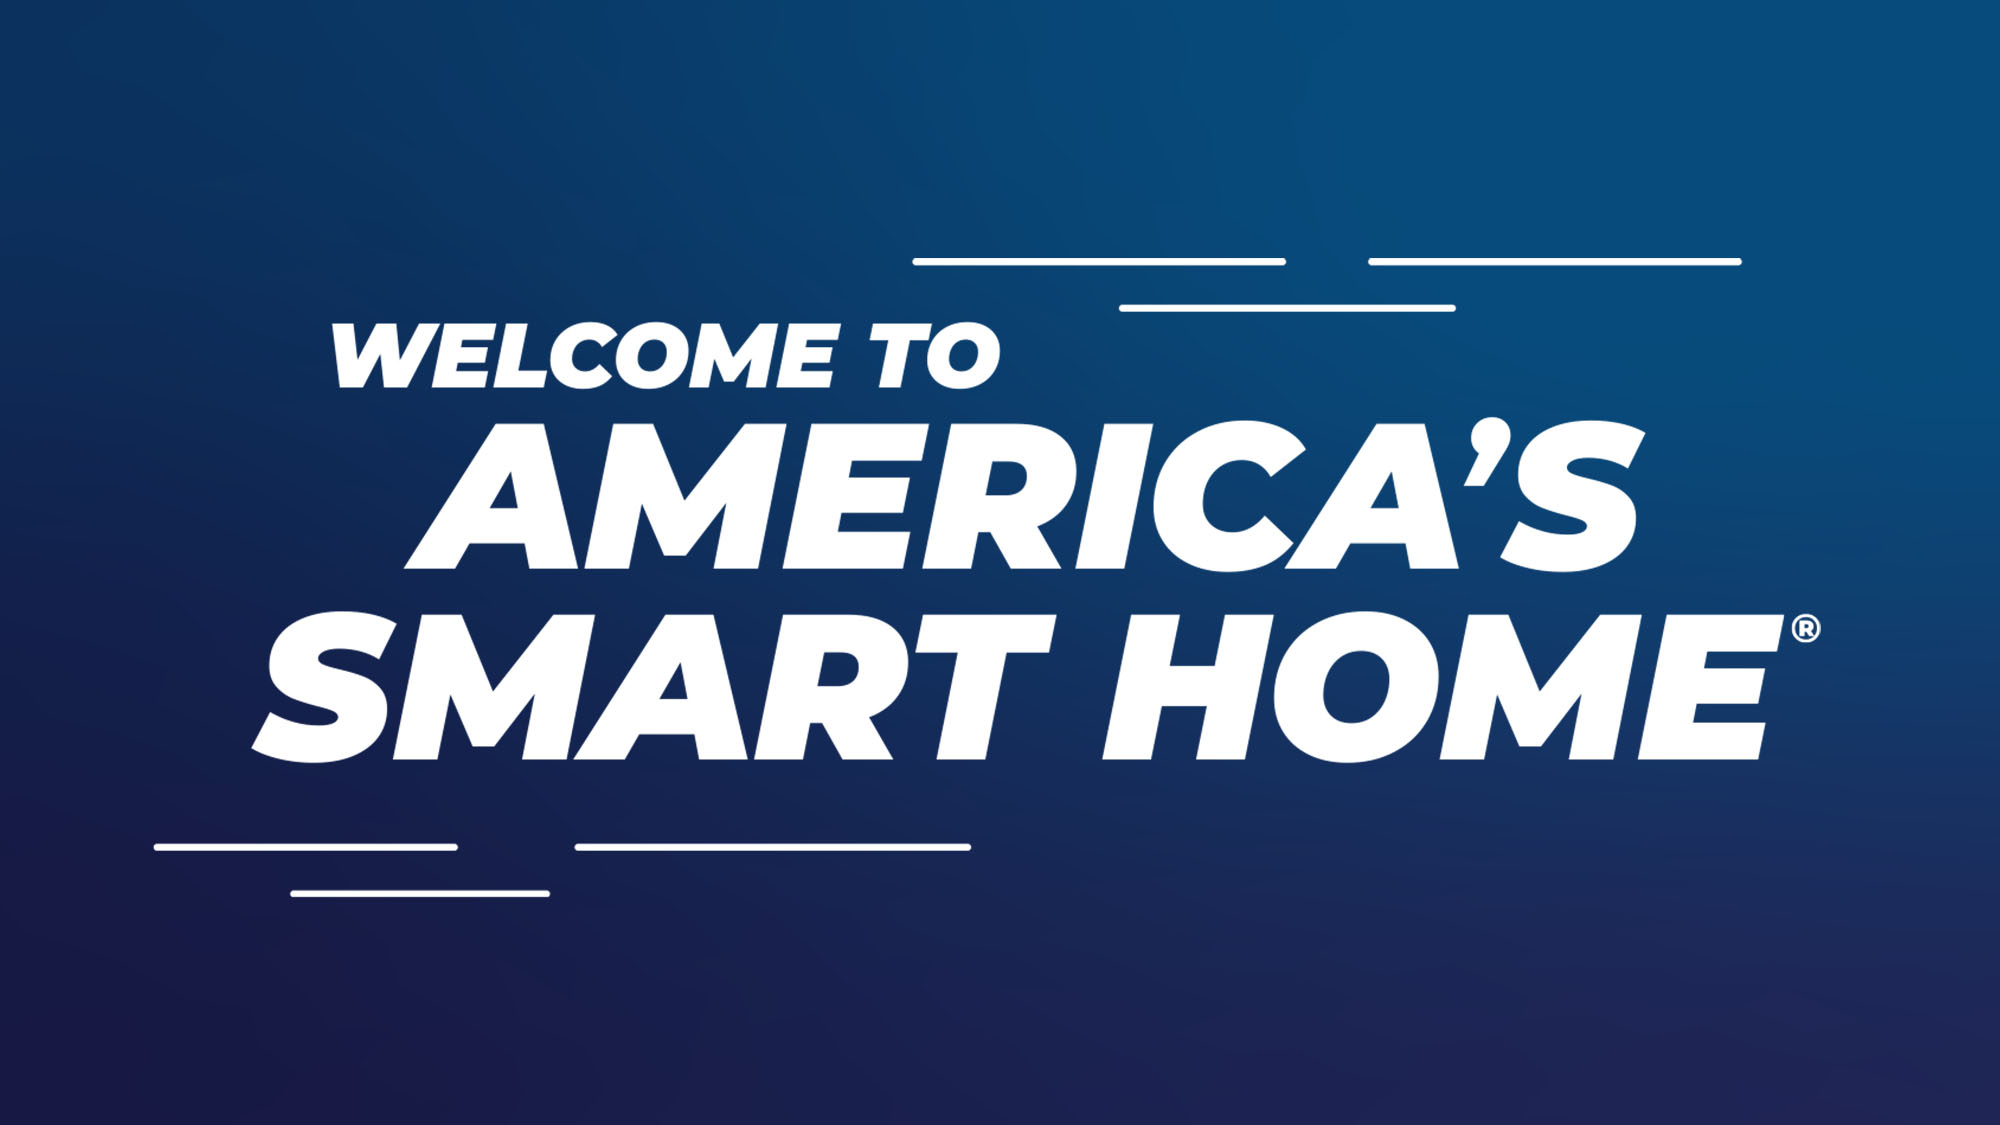 Welcome to America's Smart Home